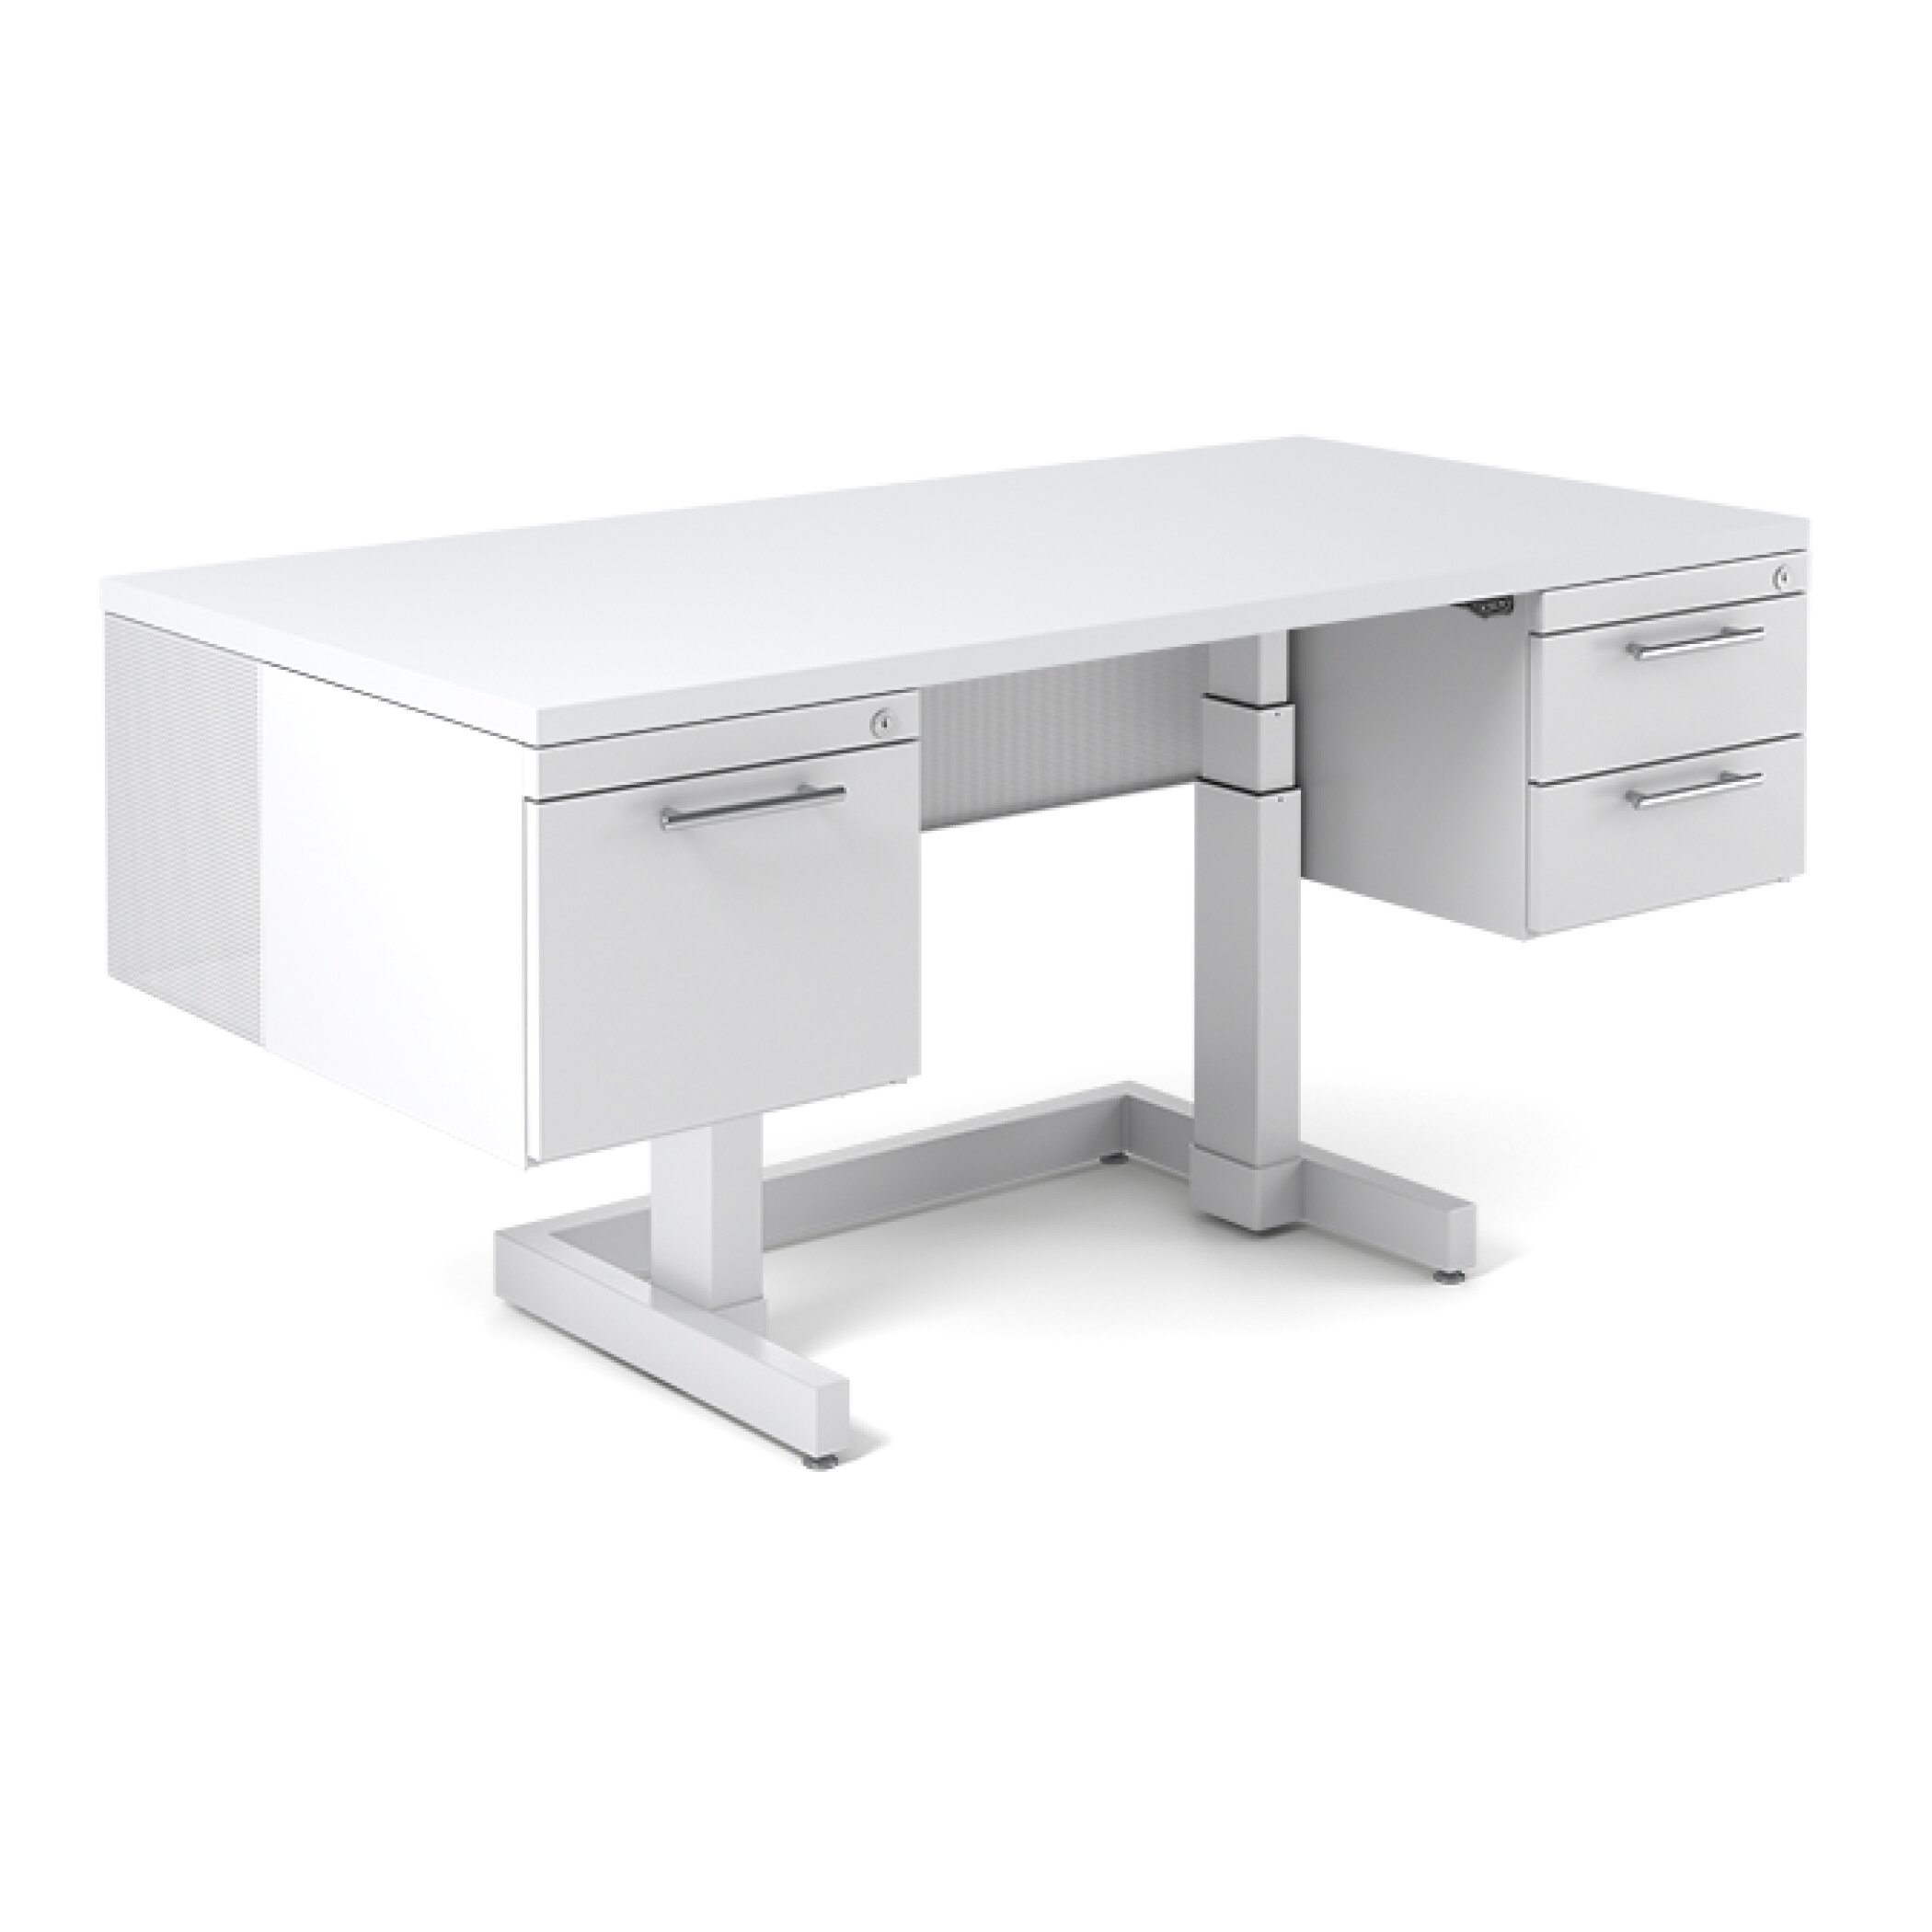 BOLD Furniture One Standing Desk with File Wayfair Supply